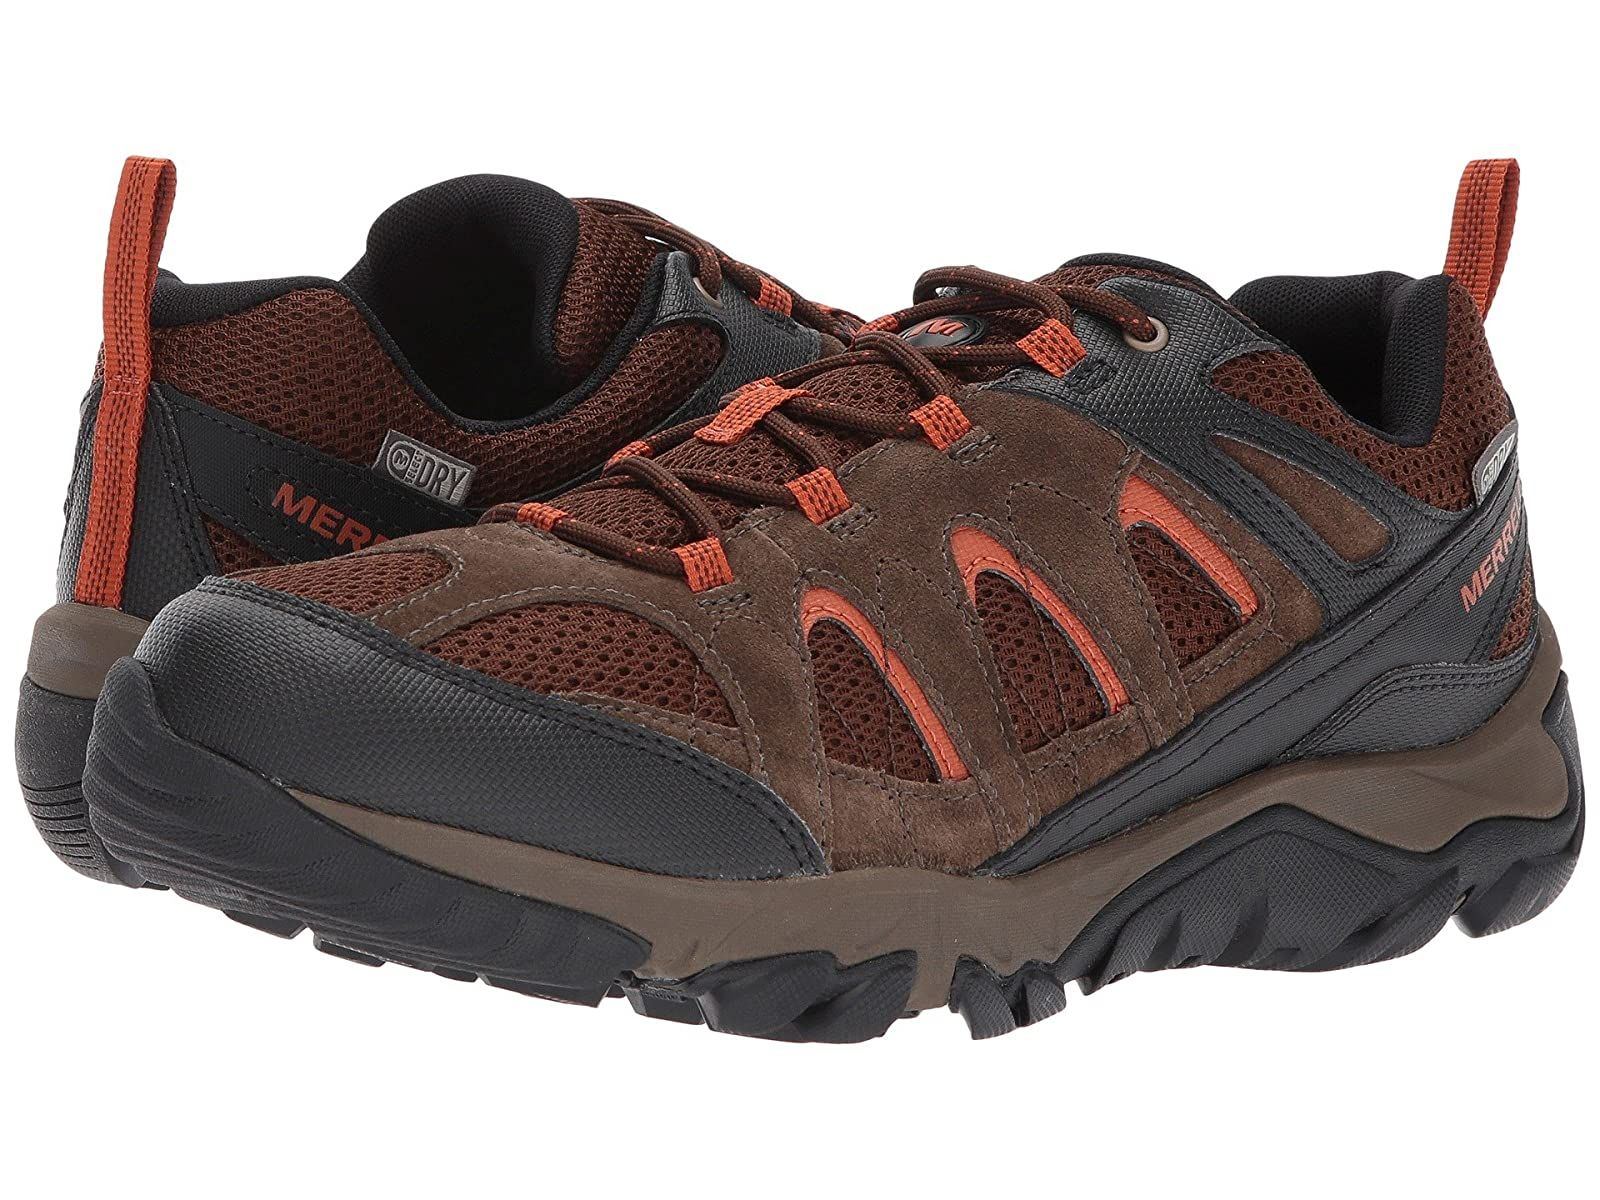 Merrell Outmost Vent WaterproofCheap and distinctive eye-catching shoes